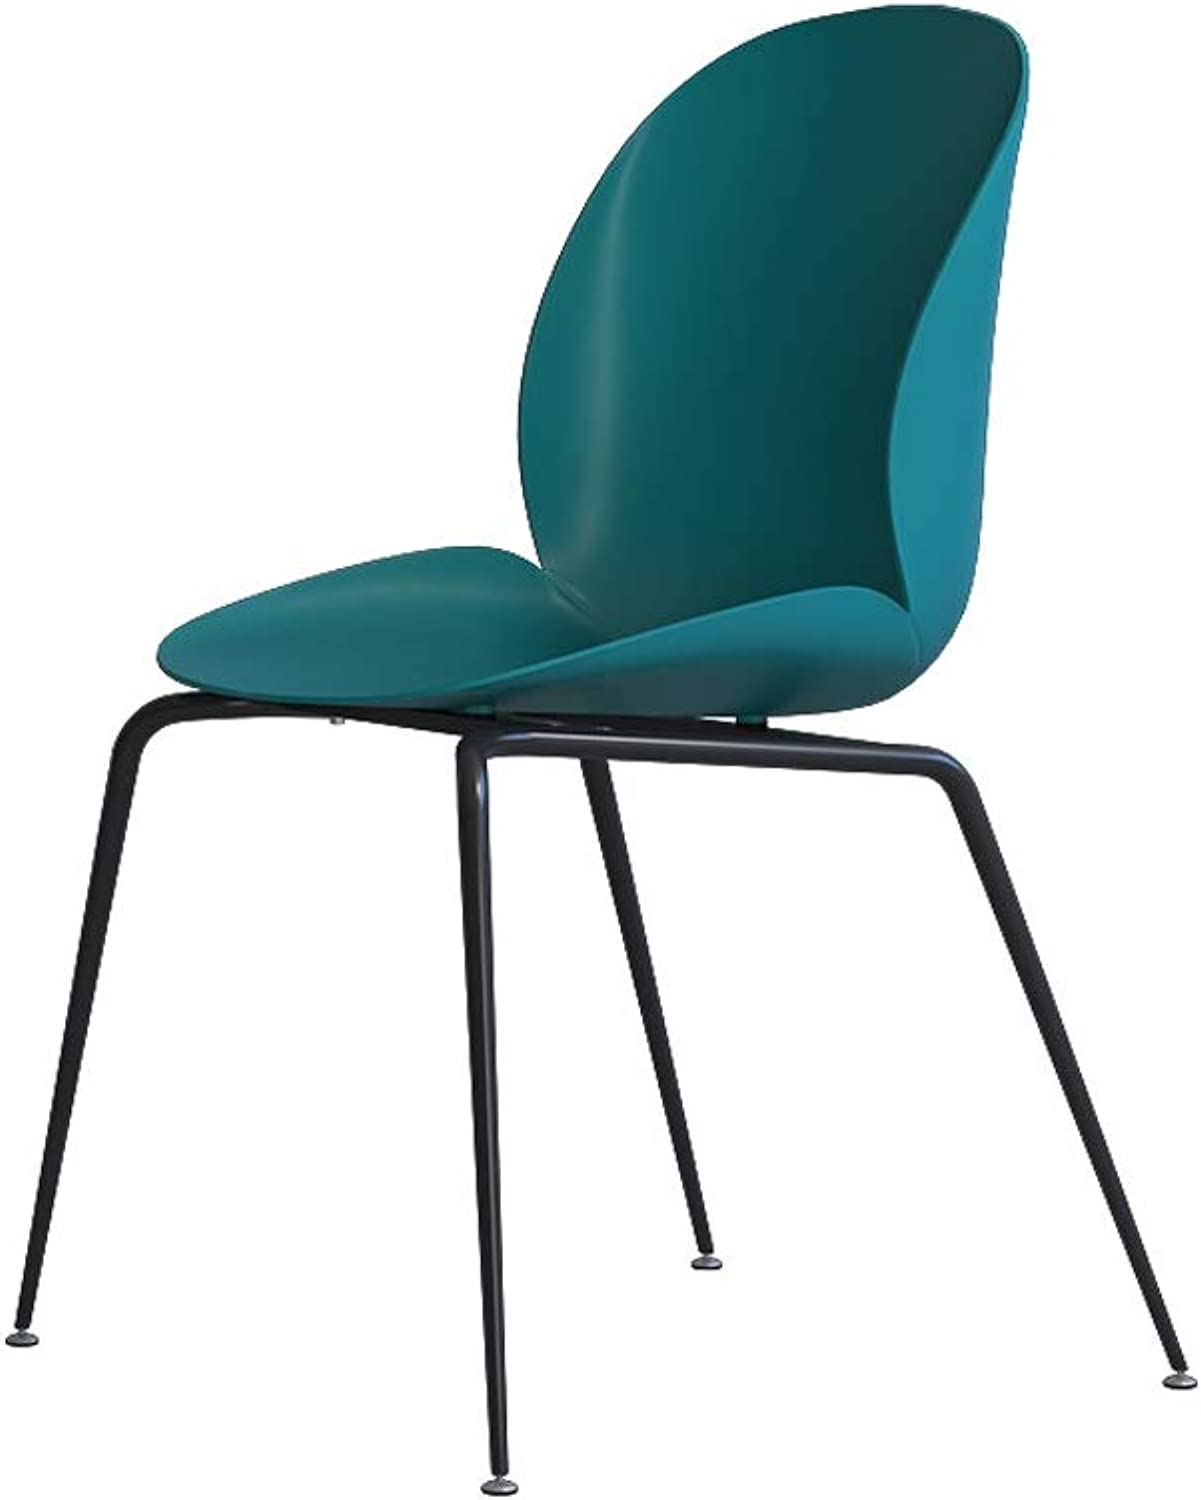 YJWOZ Plastic Chair Home Wrought Iron Chair Acrylic Plastic Small Chair 50×53×86cm Chair (color   C)